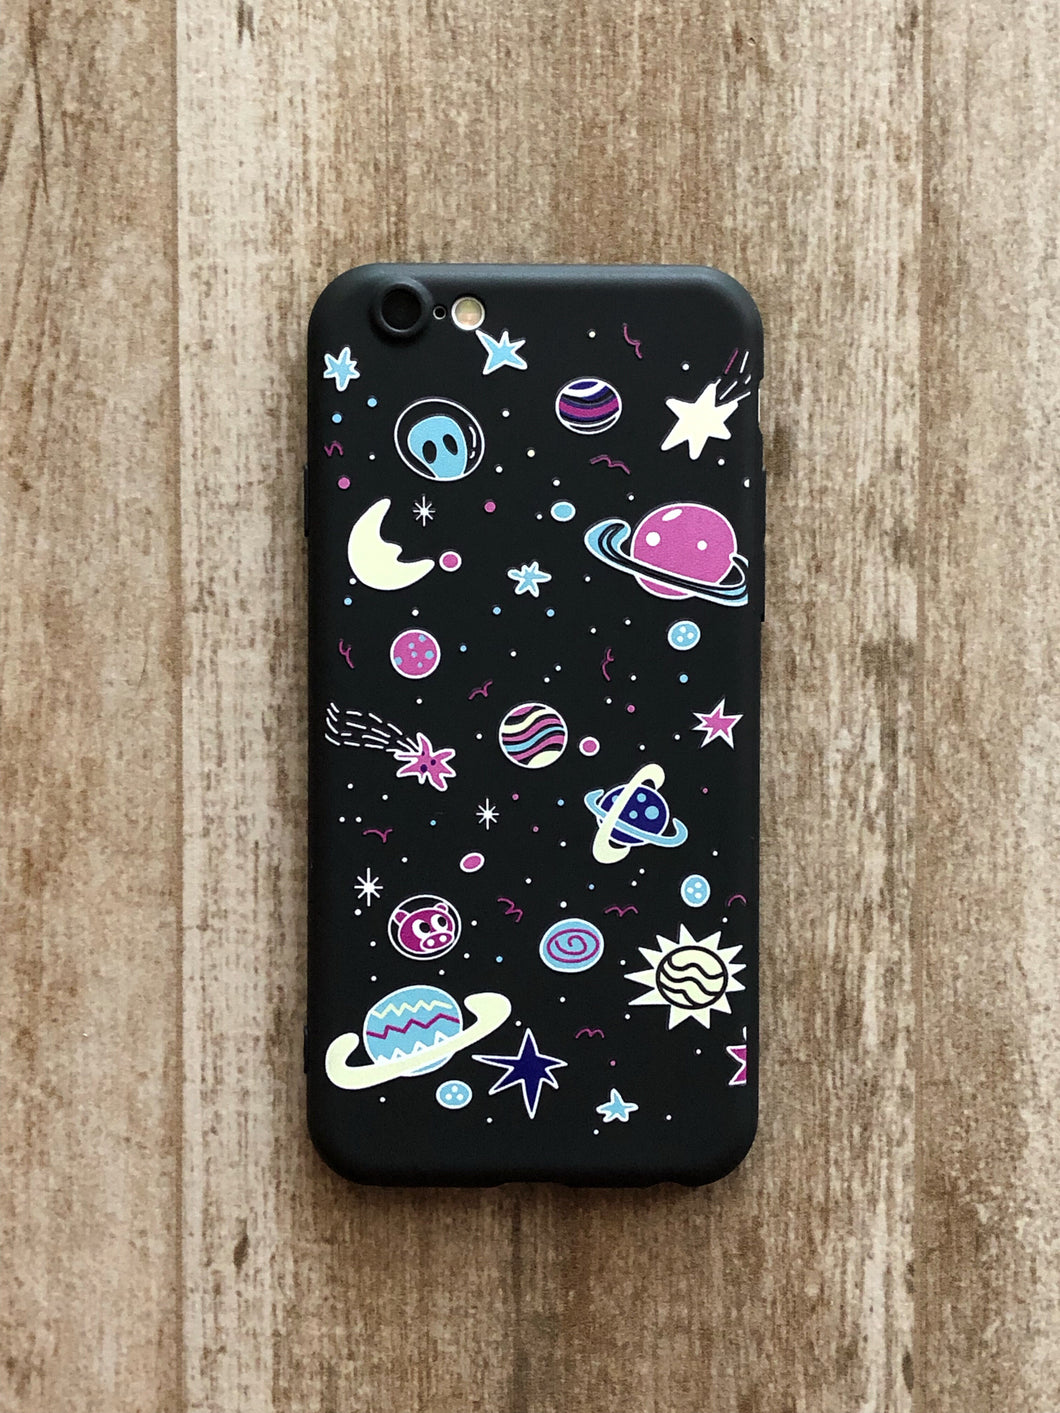 Cololorful Galaxis iPhone tok